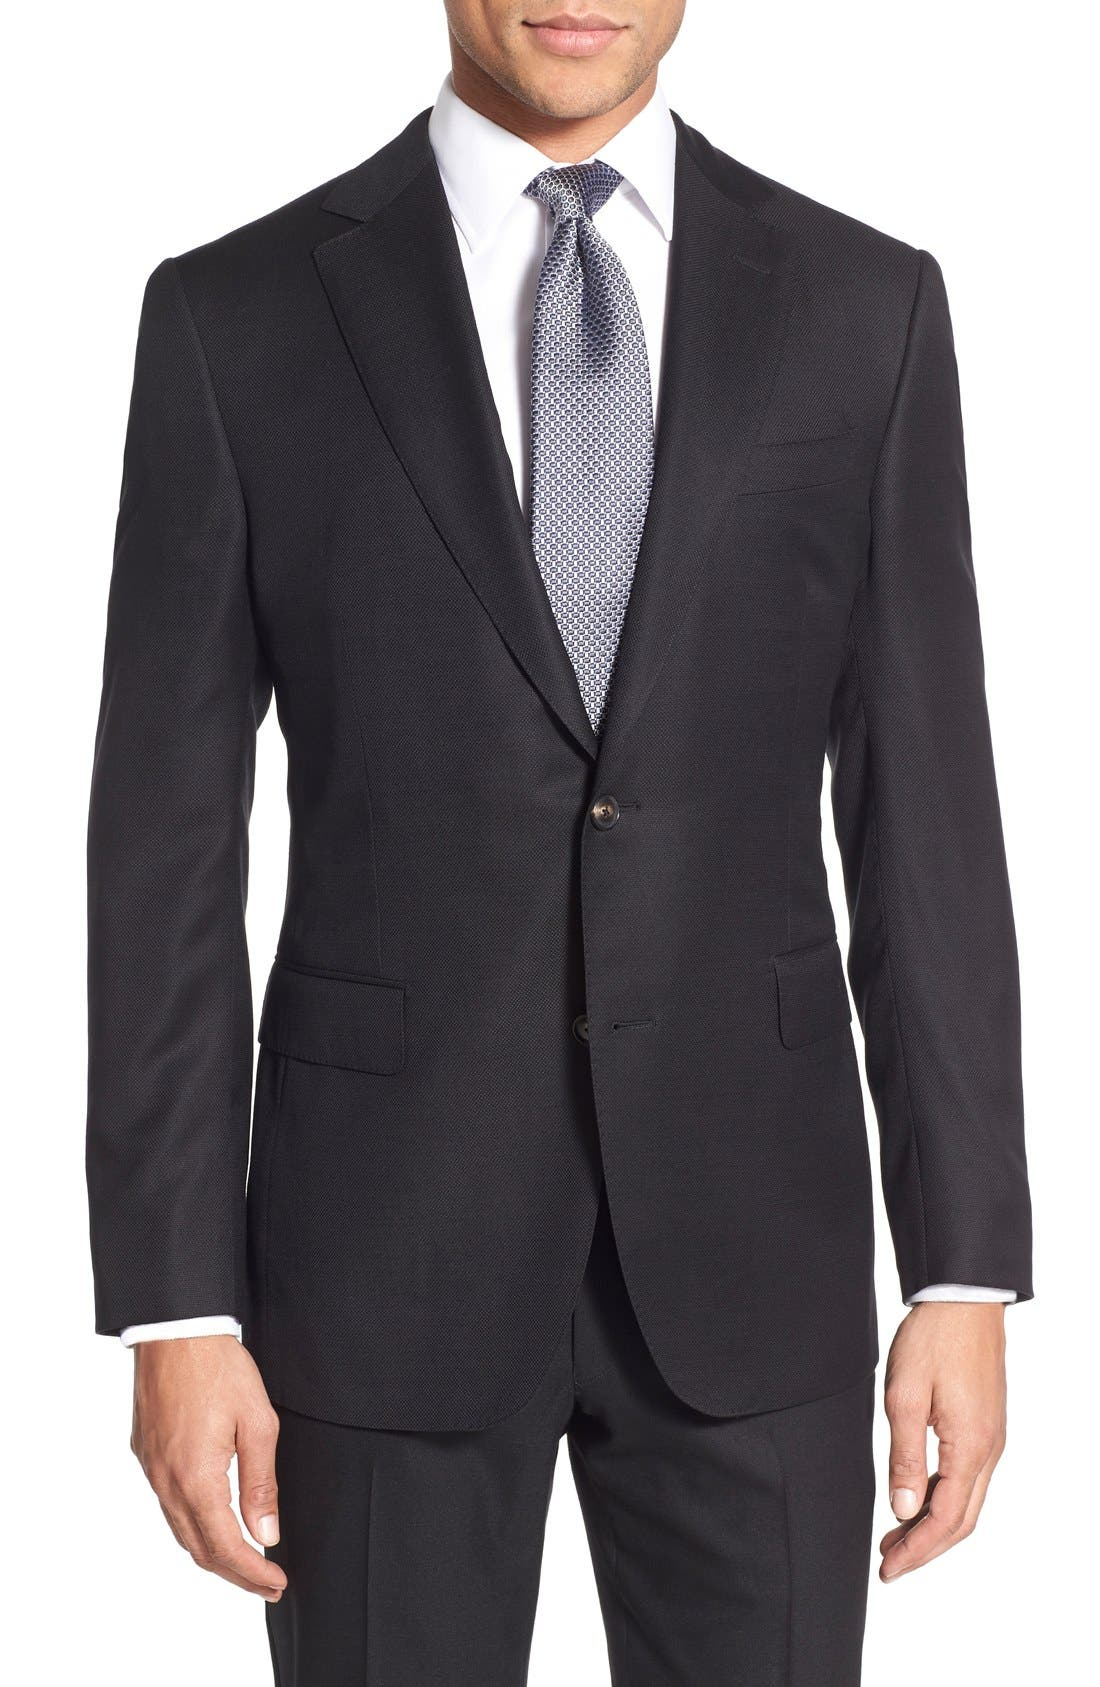 Classic Fit Wool Blazer,                             Main thumbnail 1, color,                             001